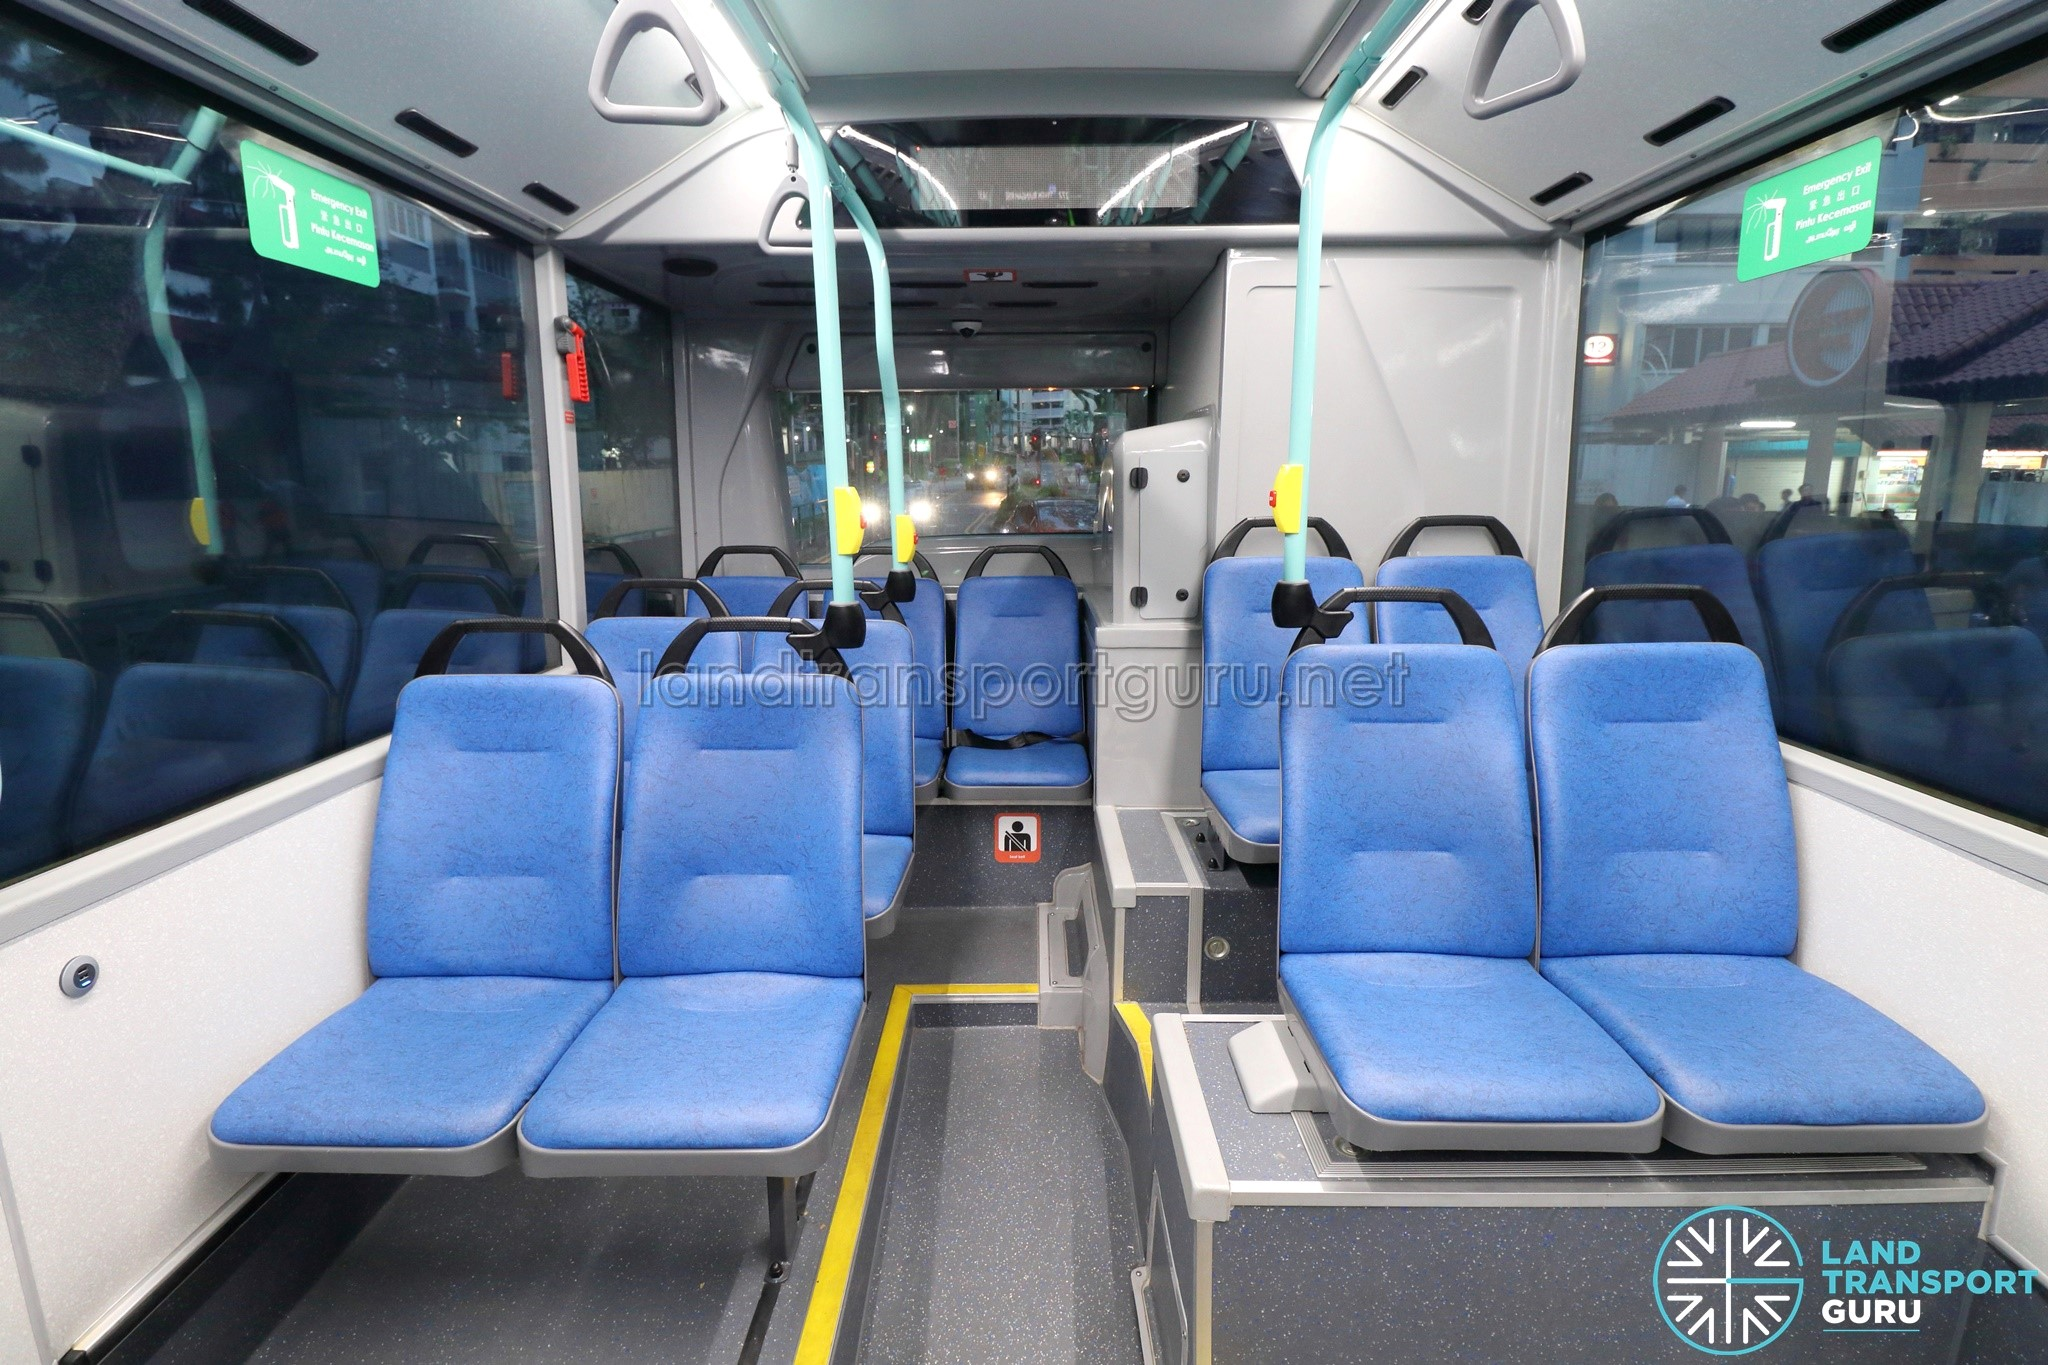 volvo b5lh rear seating with passenger information. Black Bedroom Furniture Sets. Home Design Ideas